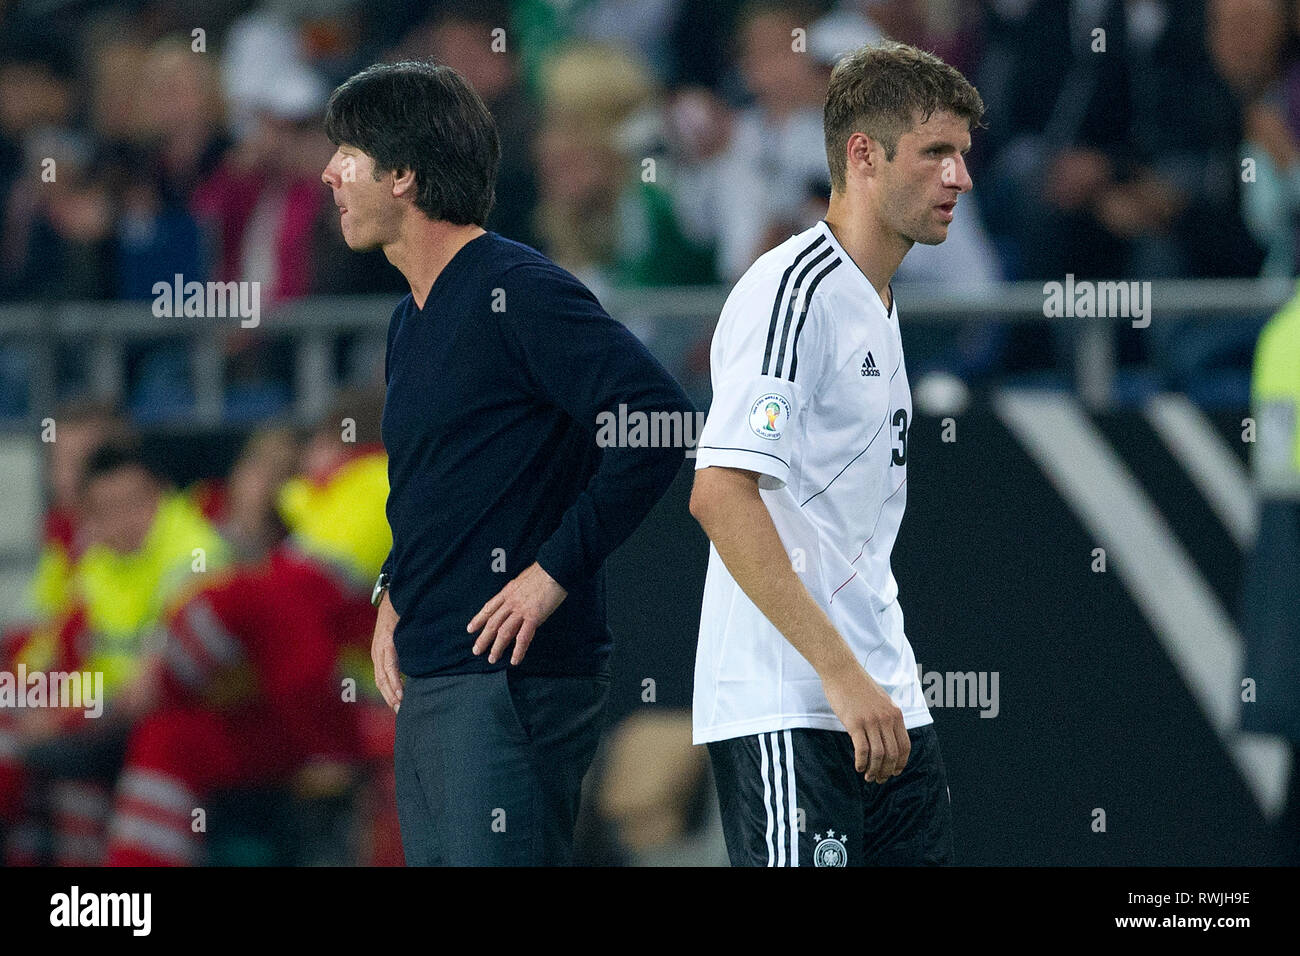 Hanover, Deutschland. 07th Mar, 2019. Federal coach Joachim Jogi LOEW, LOW (GER) and Thomas MUELLER. Stock Credit: Thomas MUELLER (re, MâA LLER) has been substituted by coach Joachim LOEW (LâA_W, both from GER), Football Laenderspiel, World Cup Qualification, Germany (GER) - Faeroeer (FRO) 3: 0, on 07.09.2012 in Hannover/Germany;   Usage worldwide/dpa/Alamy Live News - Stock Image